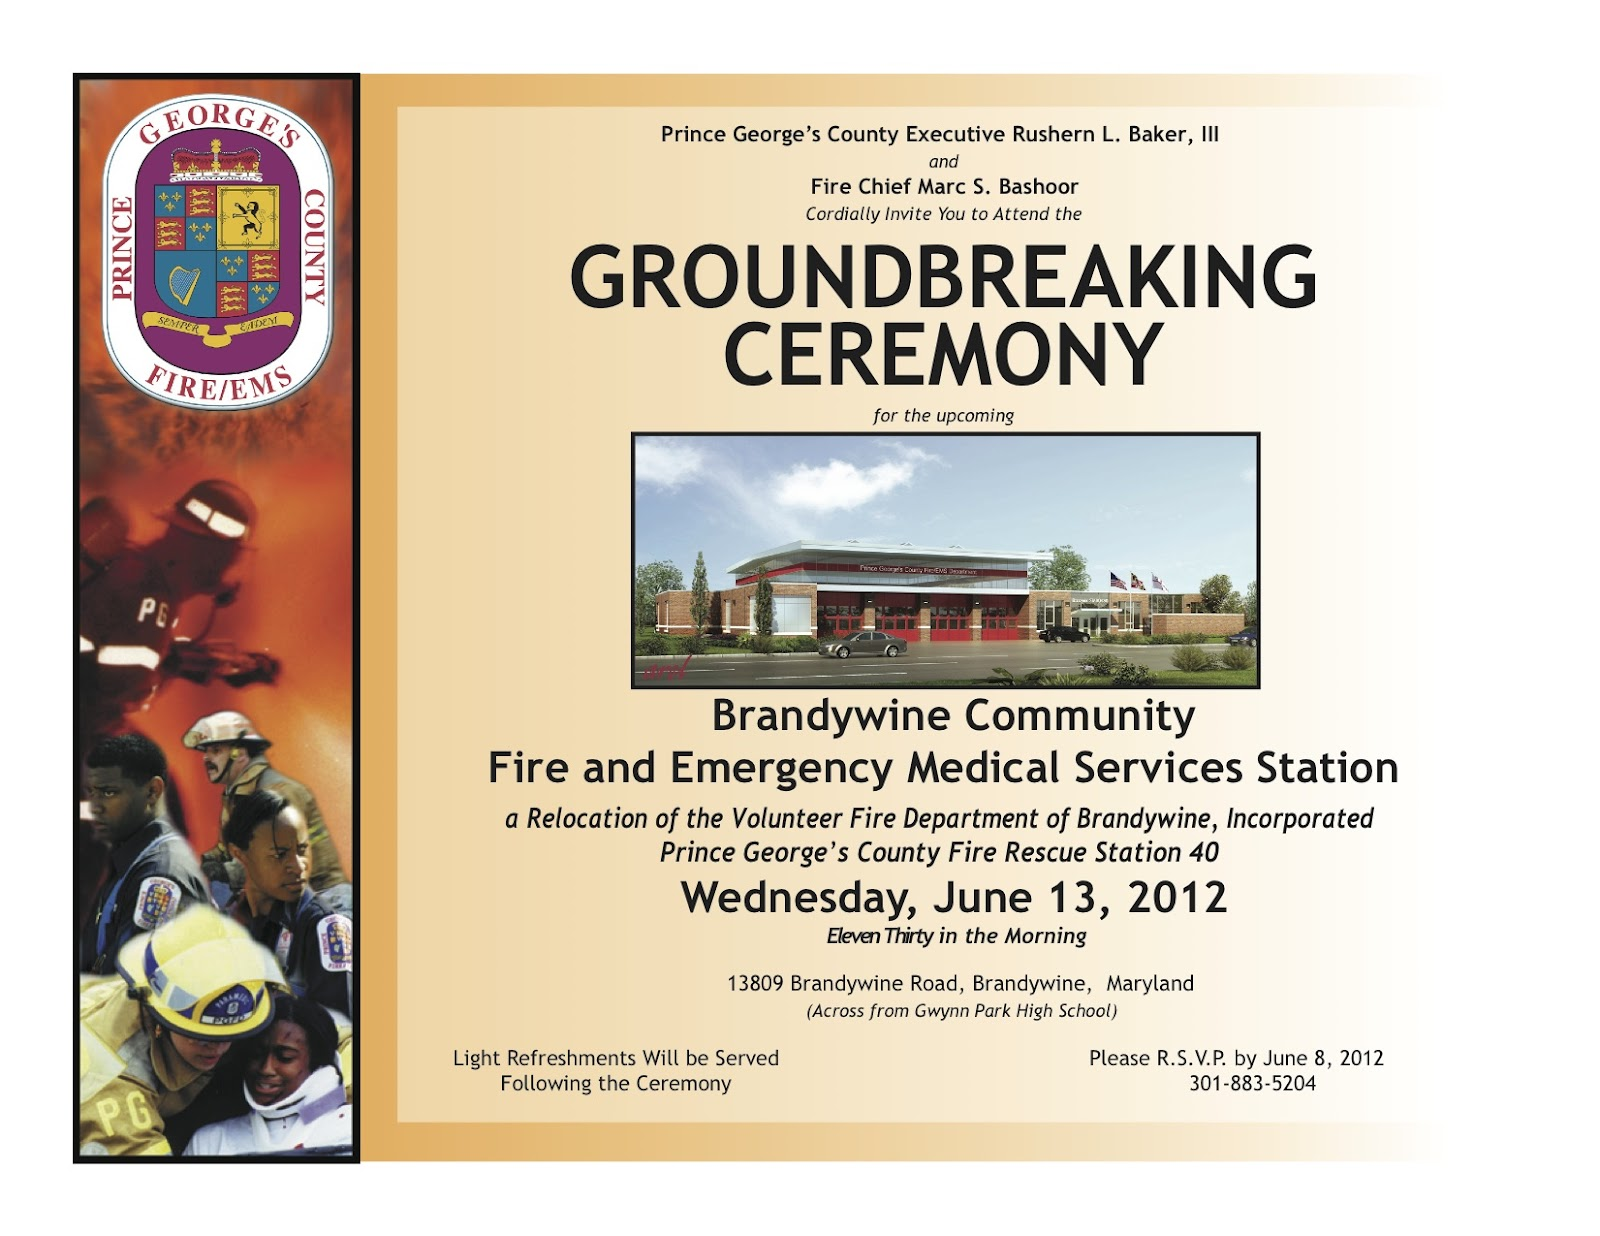 Prince Georges County FireEMS Department Groundbreaking